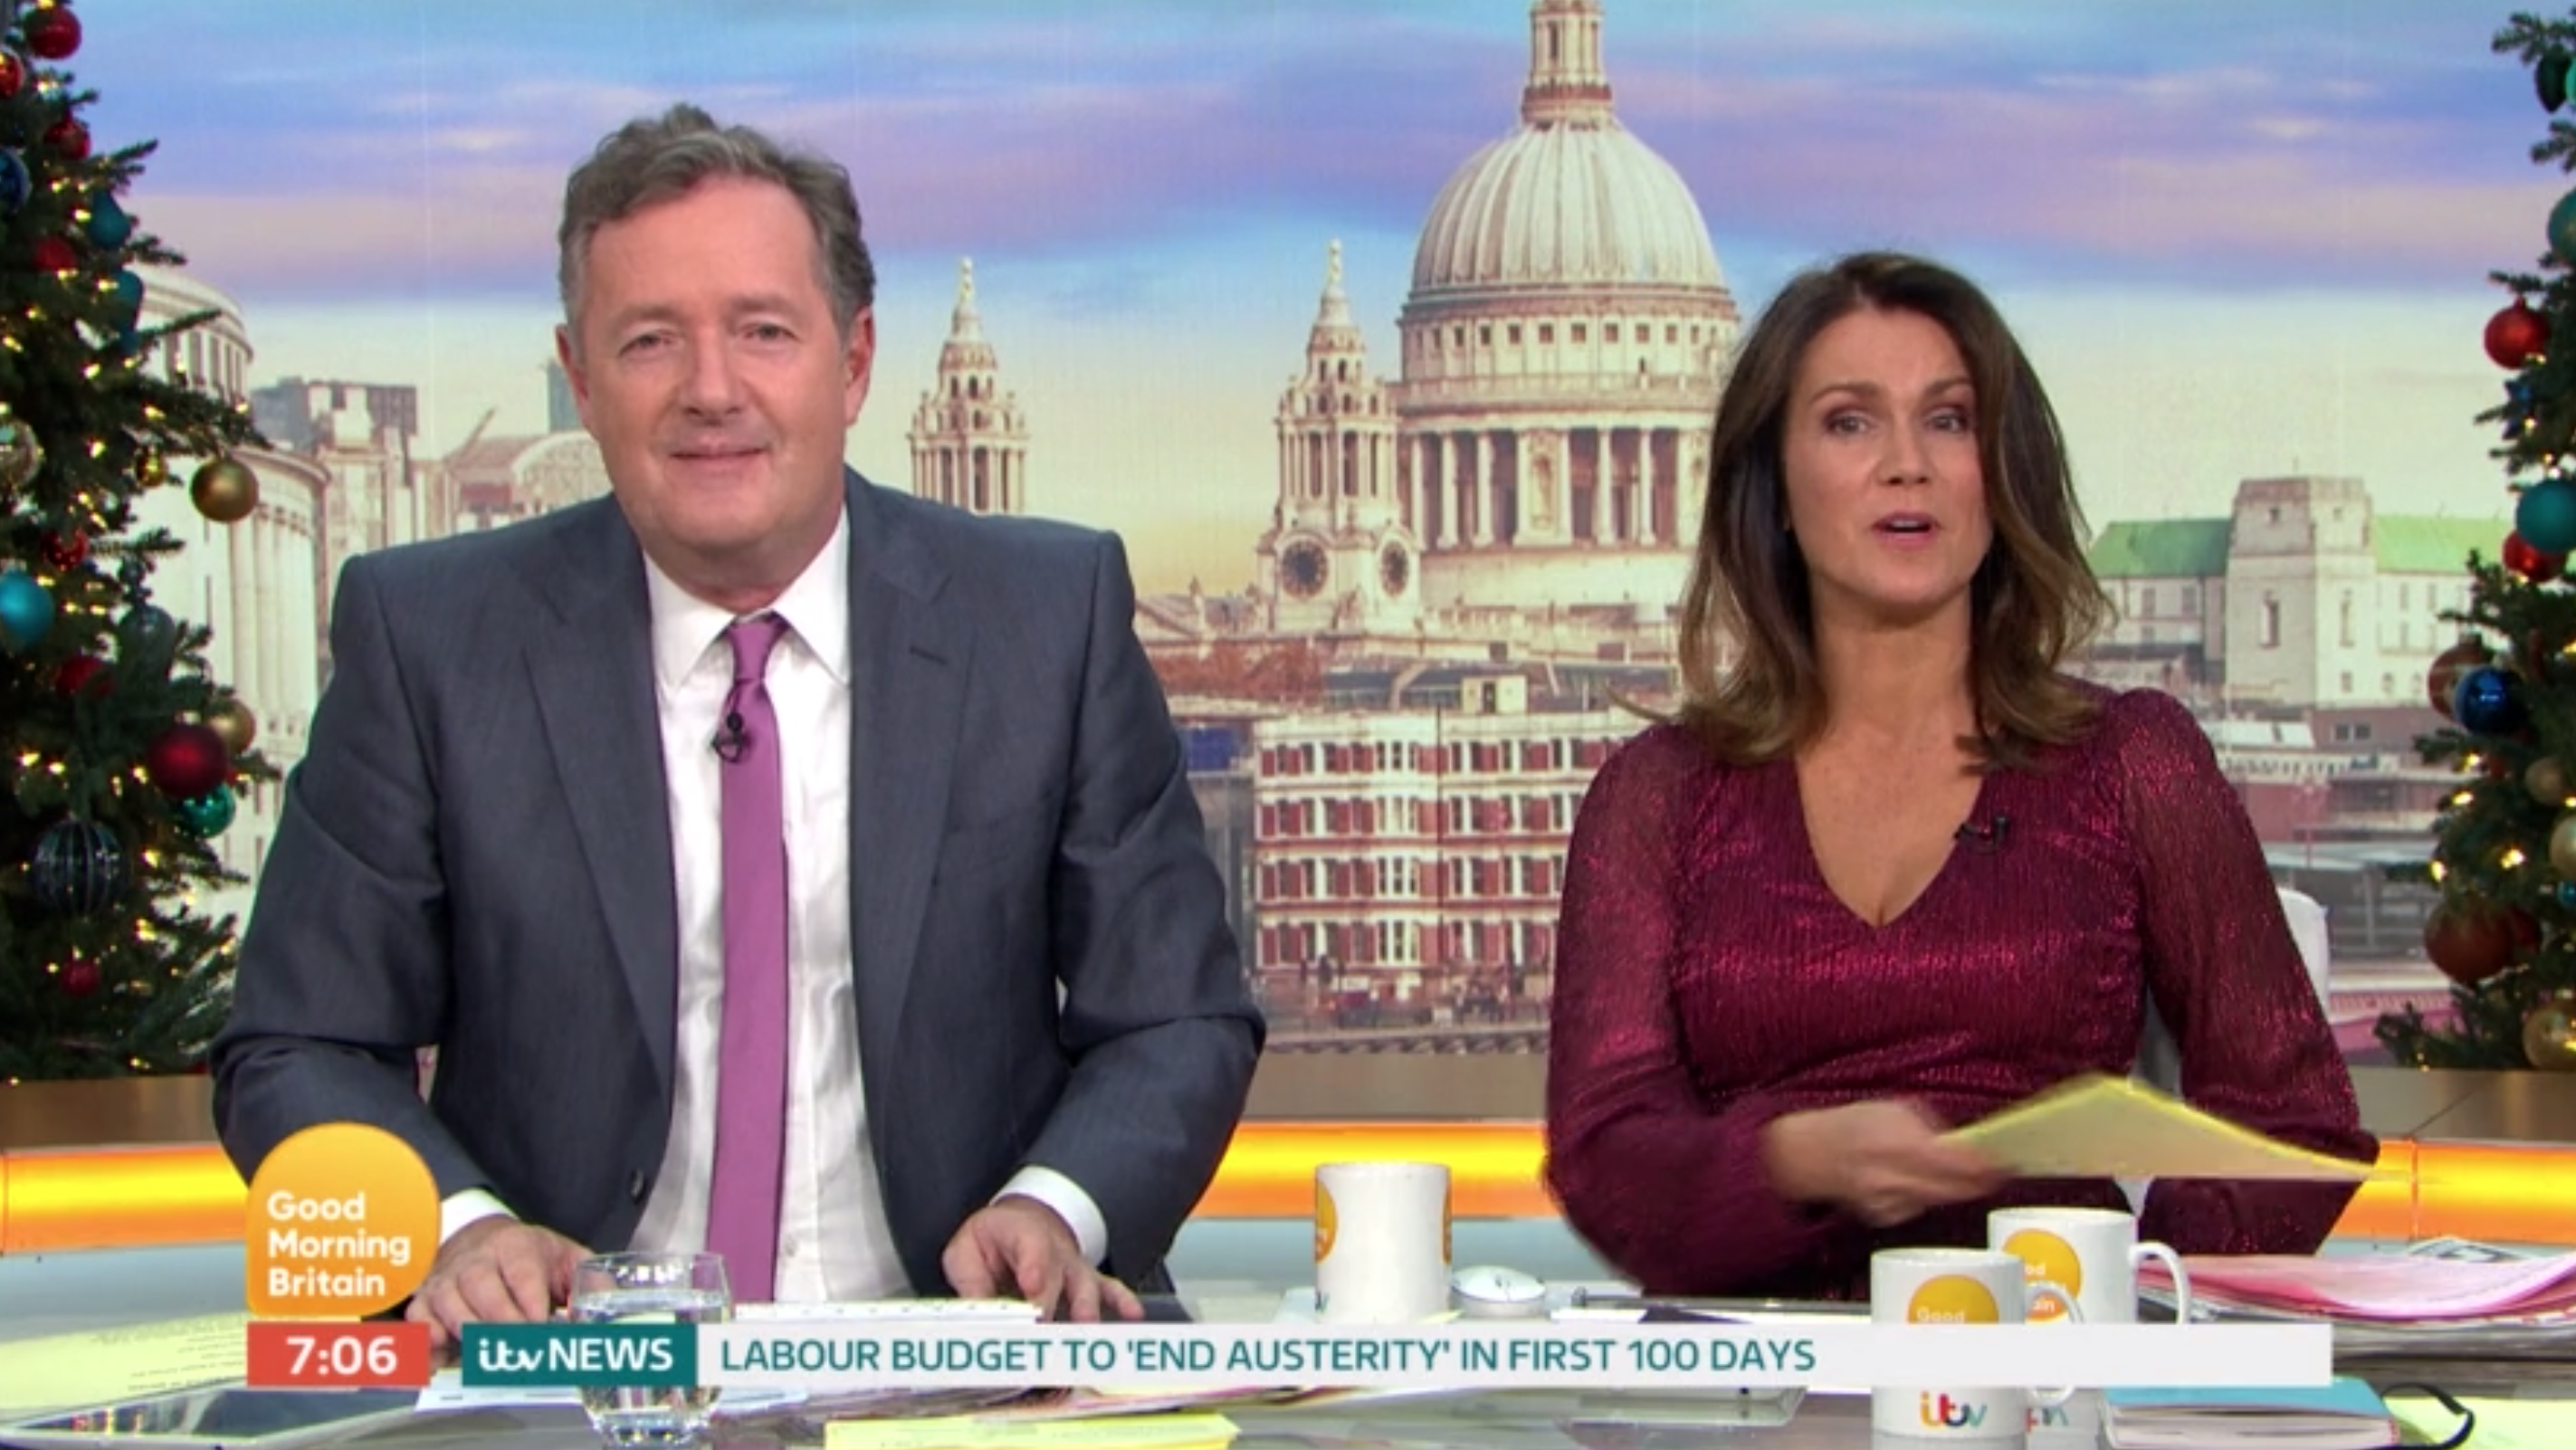 Good Morning Britain 'shake-up' as Piers Morgan works Friday for General Election coverage